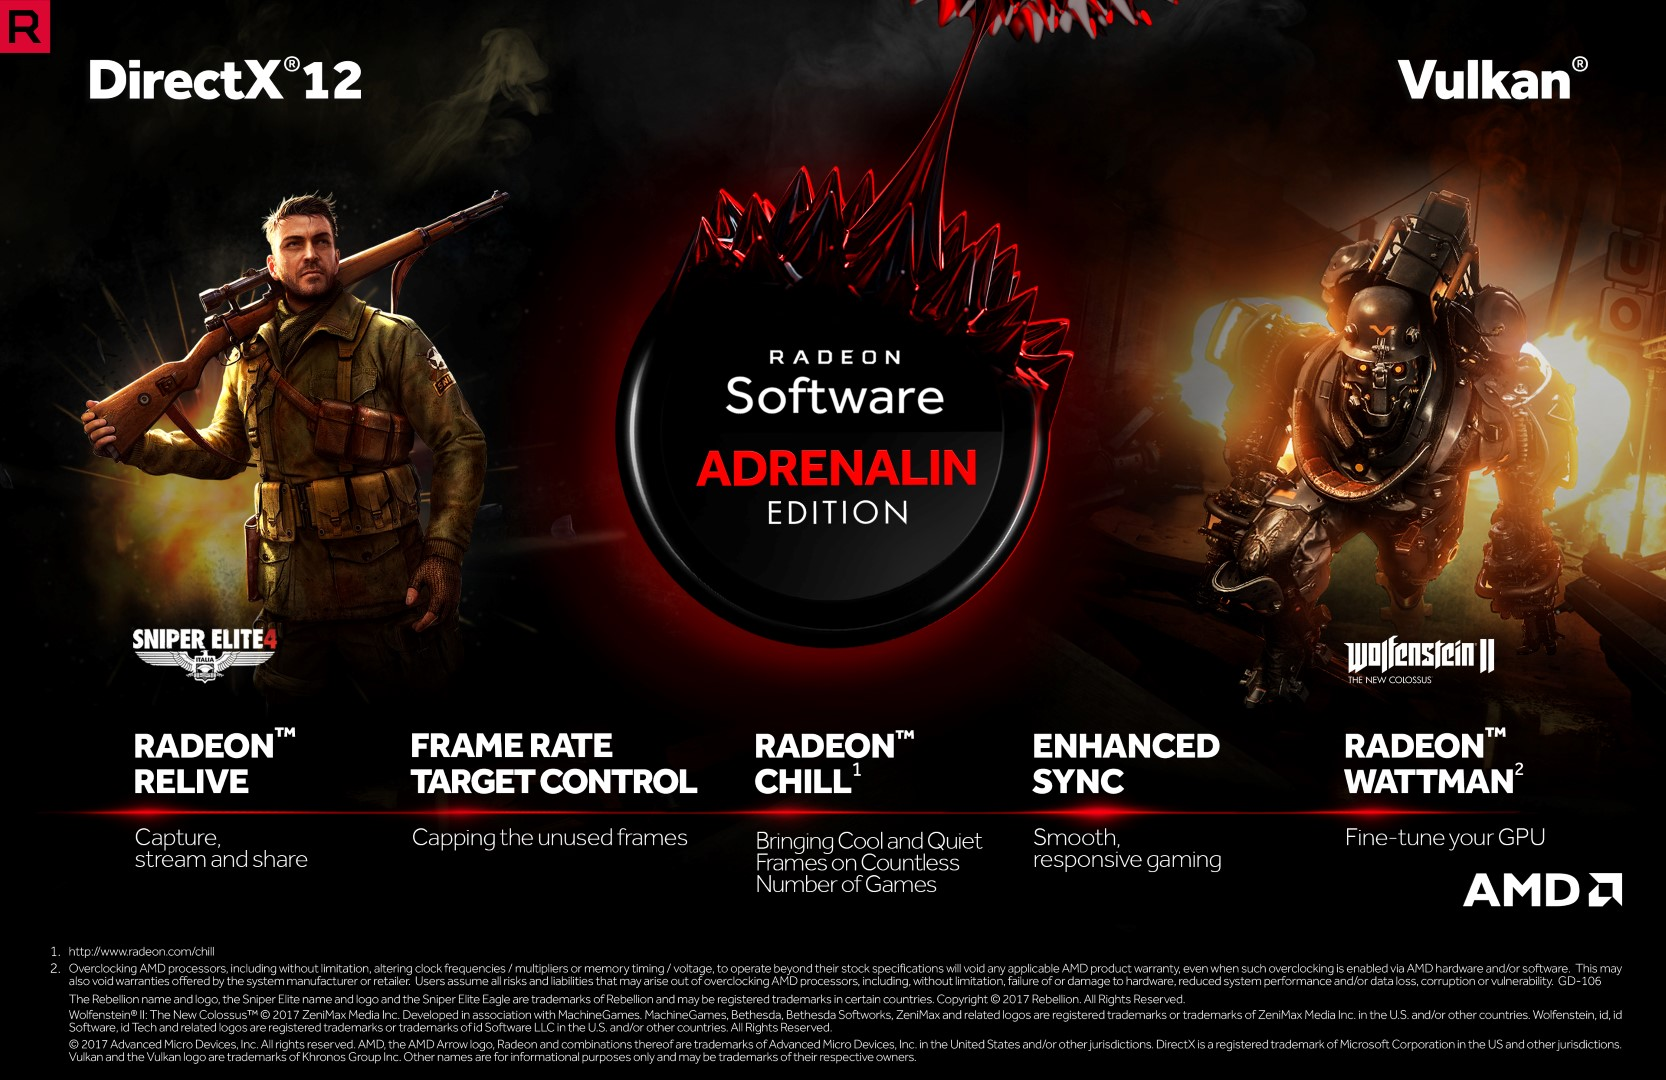 Final Thoughts - AMD Releases Radeon Software Adrenalin Edition